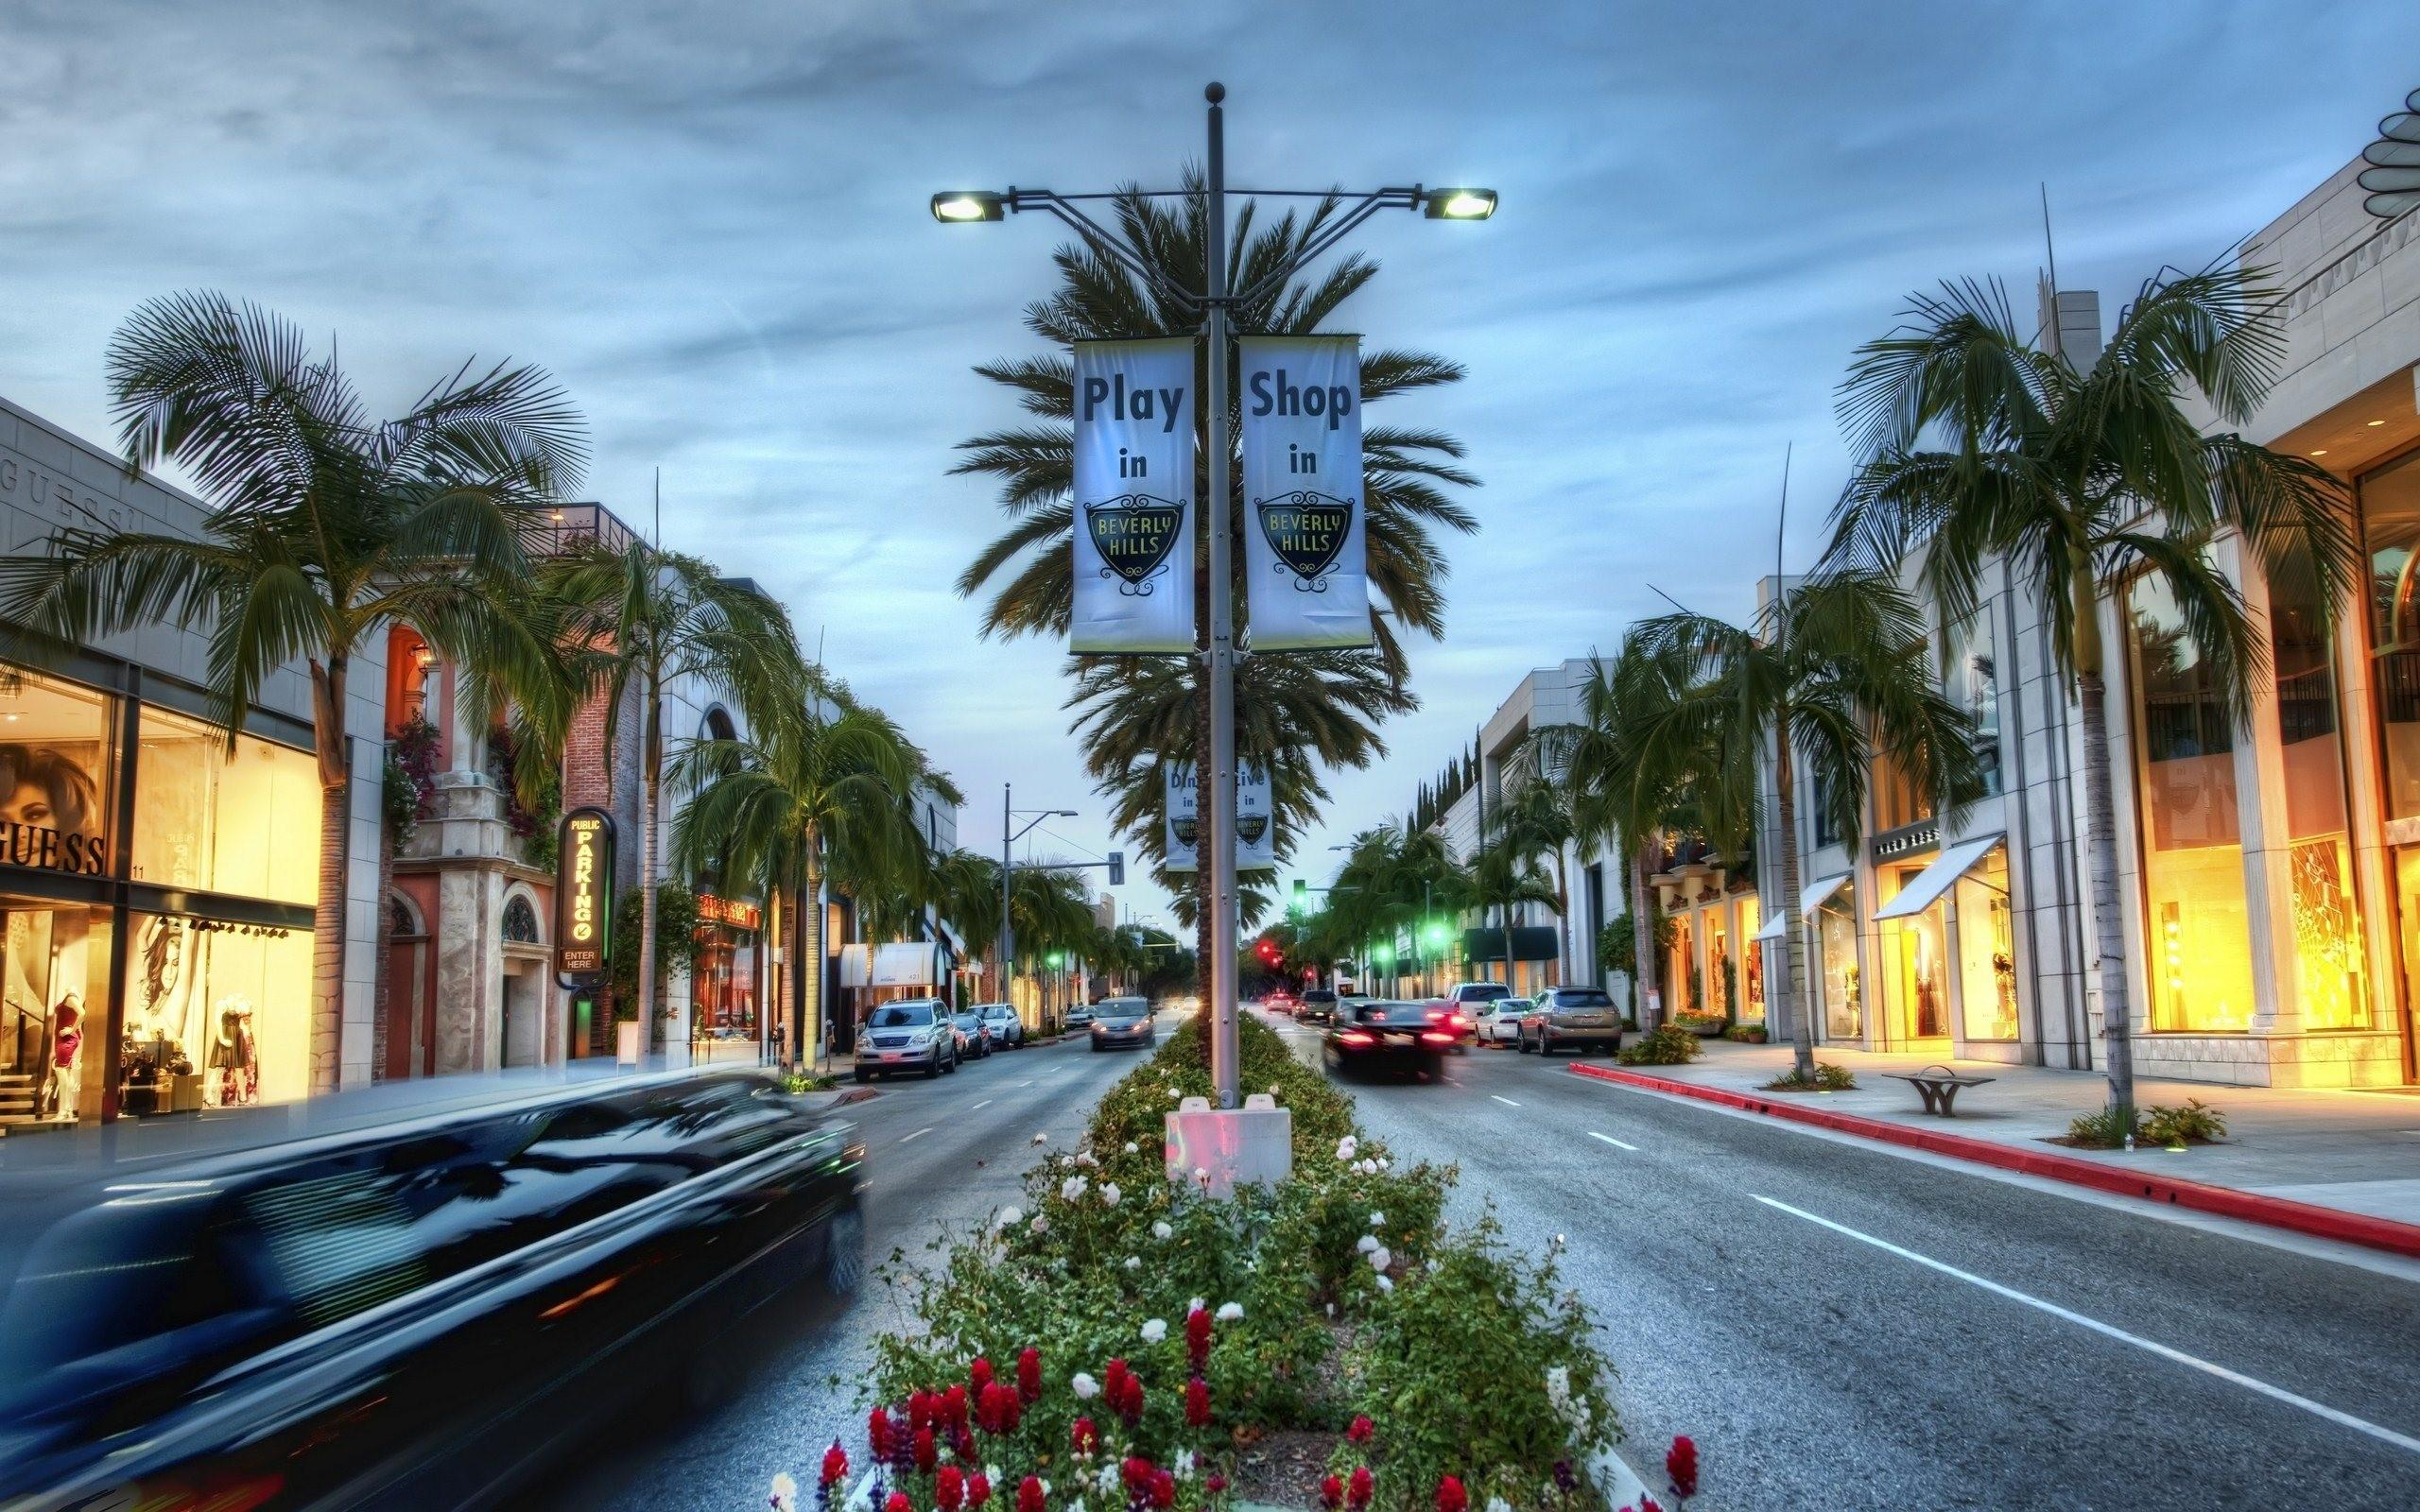 Los Angeles Tourist Attractions Ultimate Checklist